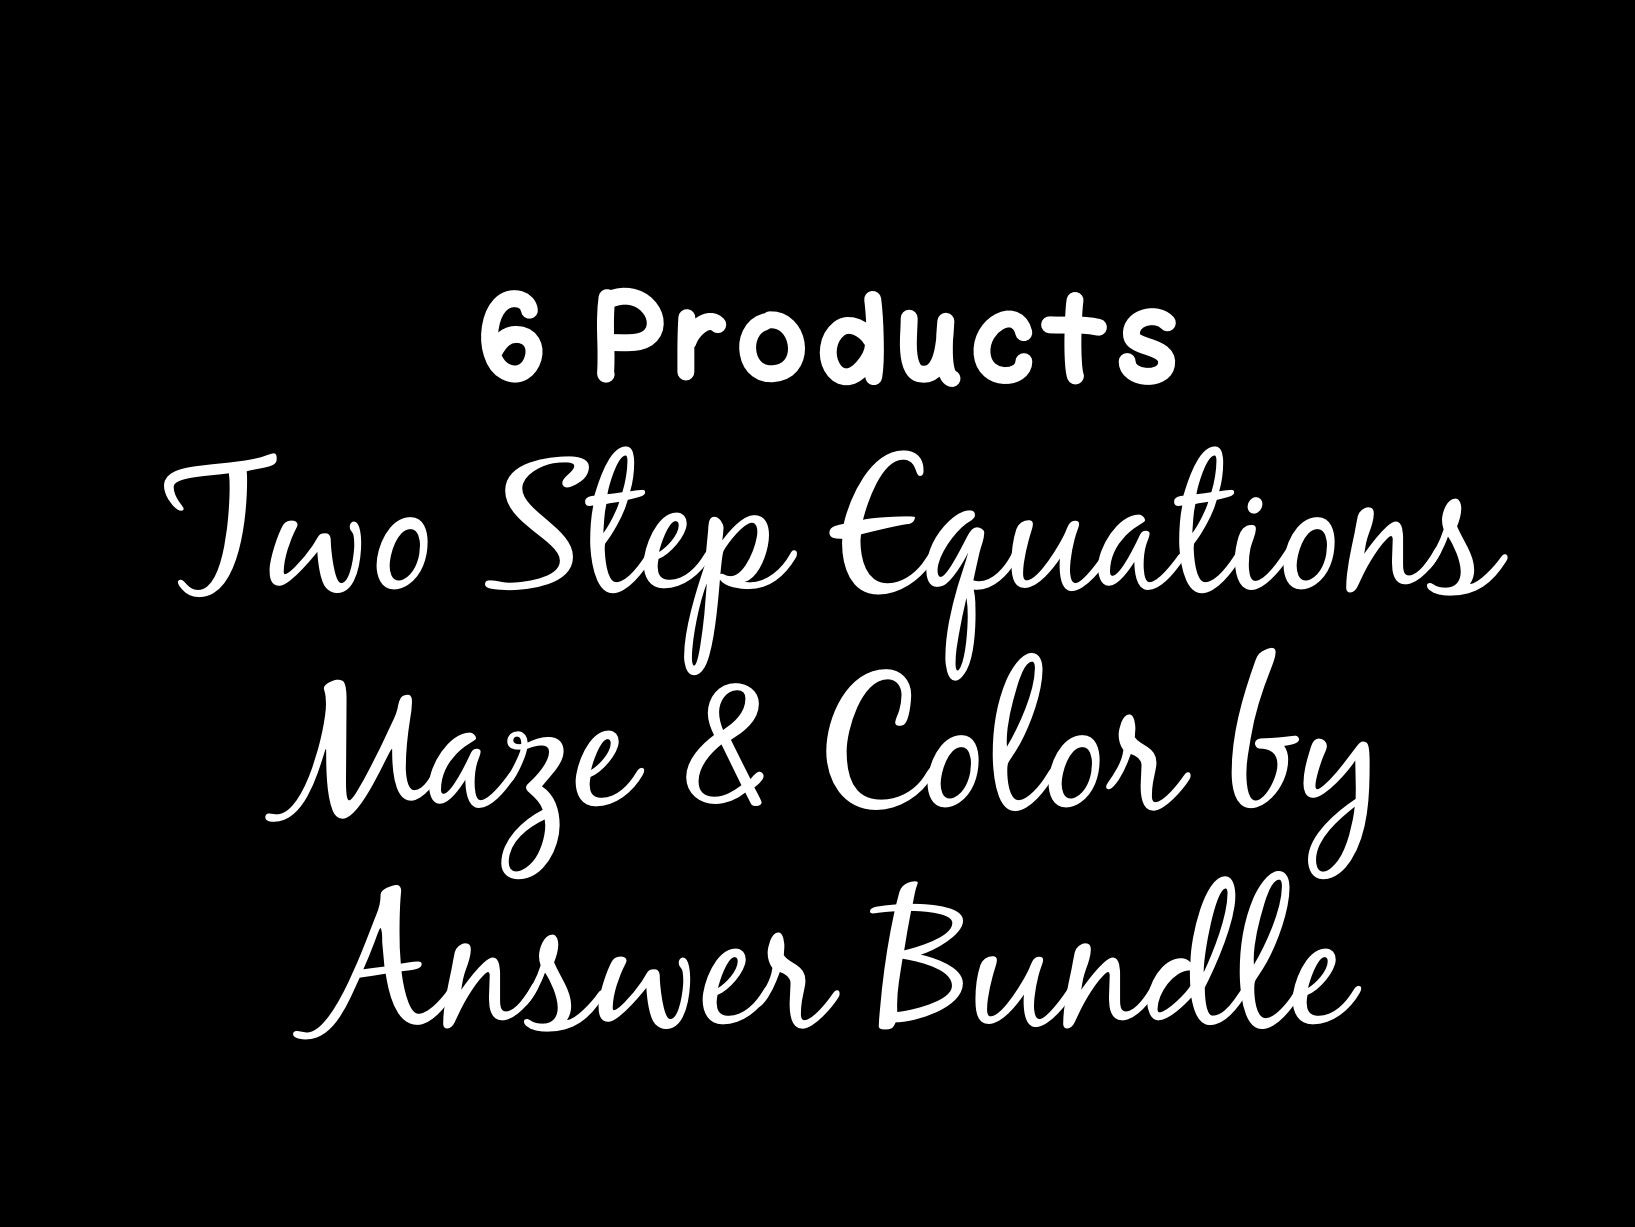 Solving Equations Two Step Equations Maze & Color by Answer Bundle